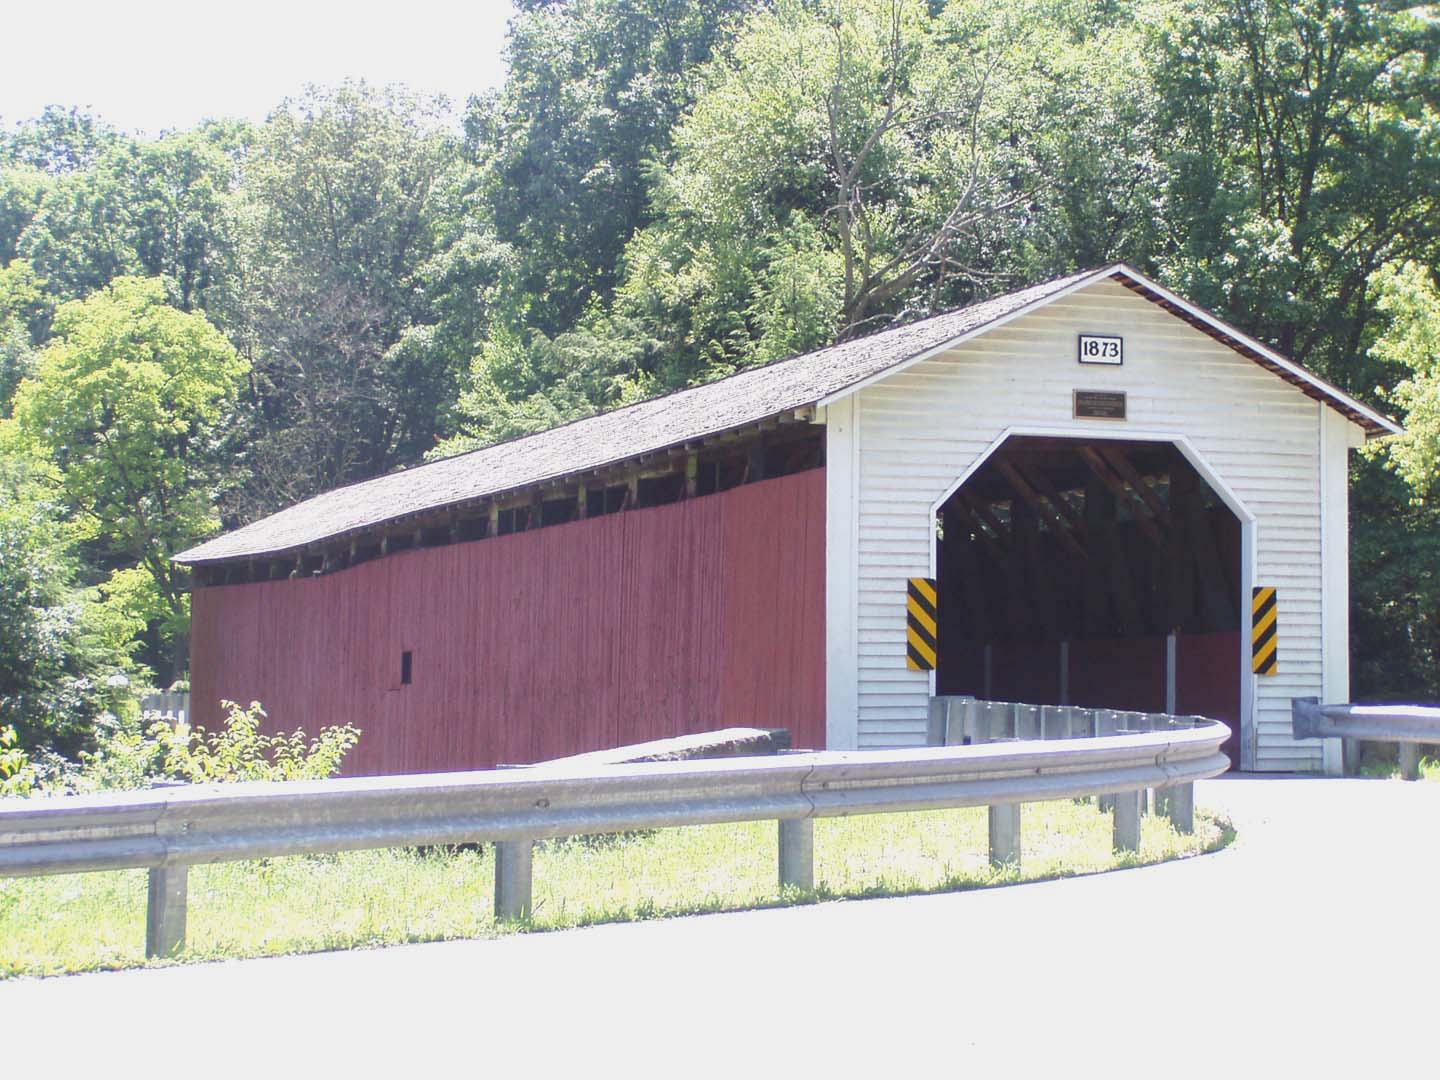 And Was Named For The First Settlers Arthur Bell Jr Family This Little Township Is Famous Having Only Covered Bridge Crossing Over